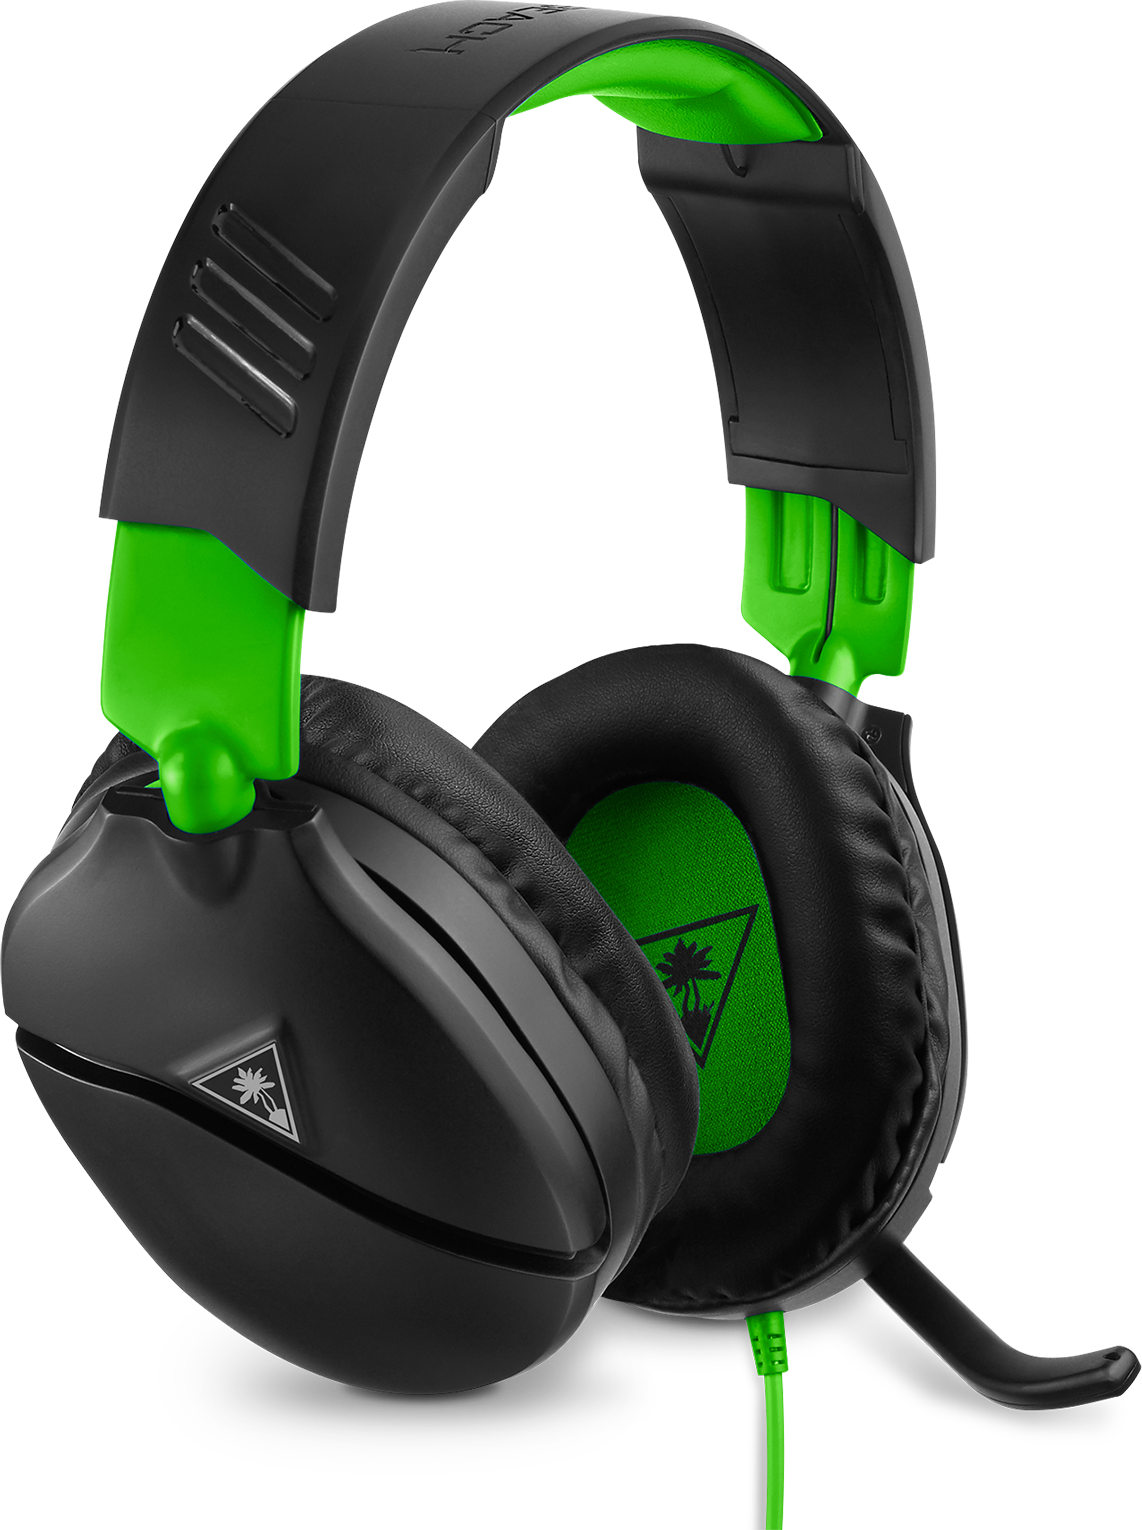 RE2Puar?ver=3f1f - Turtle Beach Recon 70 Headset for Xbox One